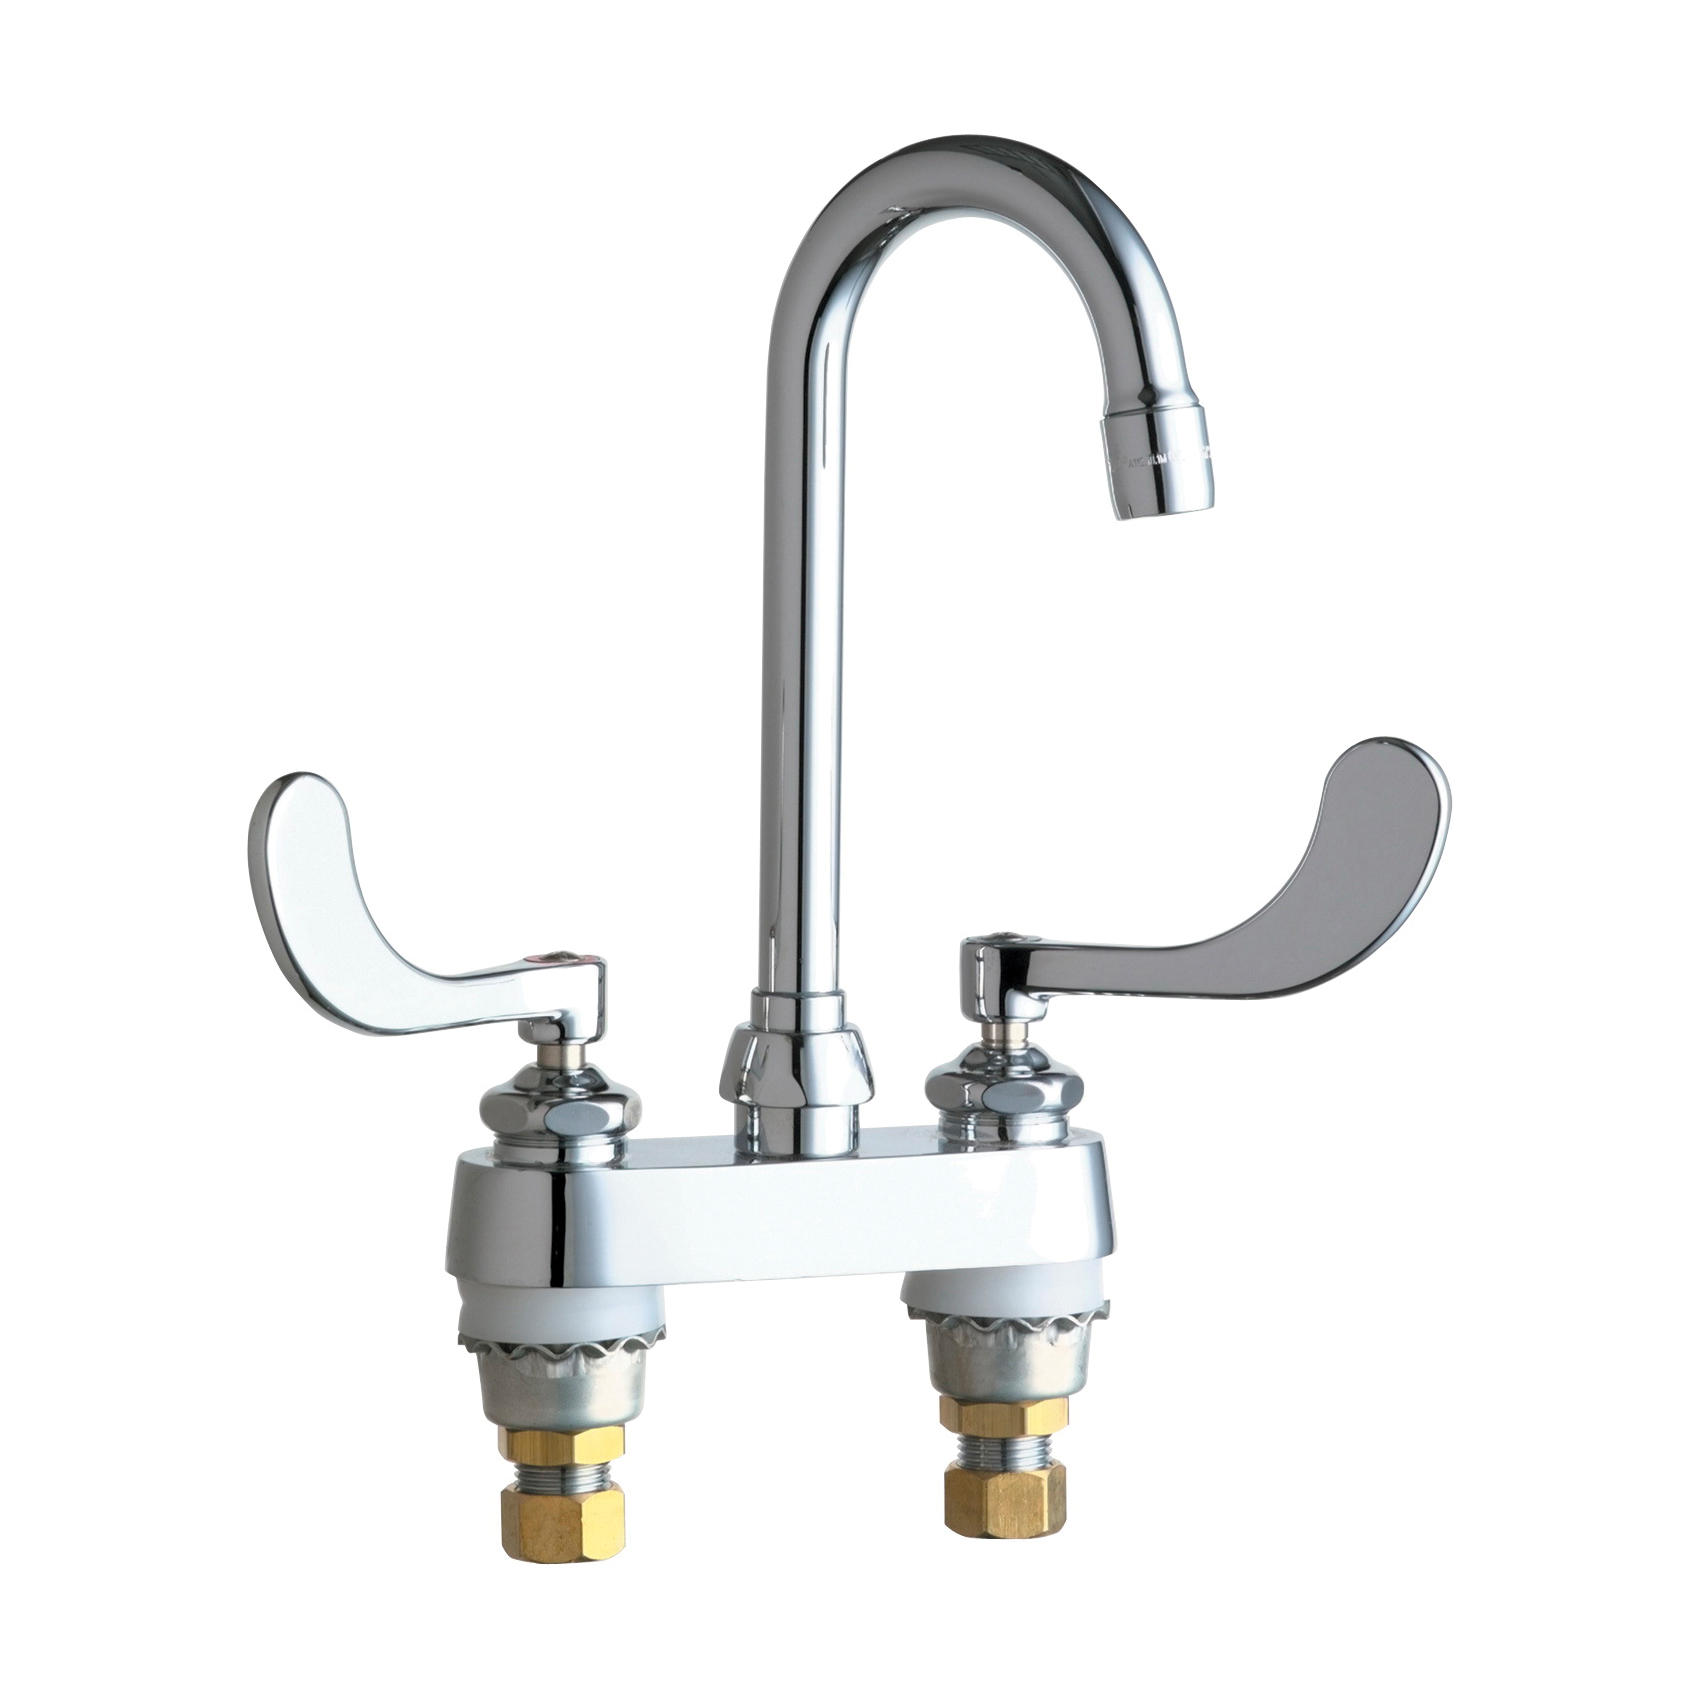 Chicago Faucet® 895-317XKABCP Lavatory Sink Faucet, Chrome Plated, 2 Handles, 2.2 gpm